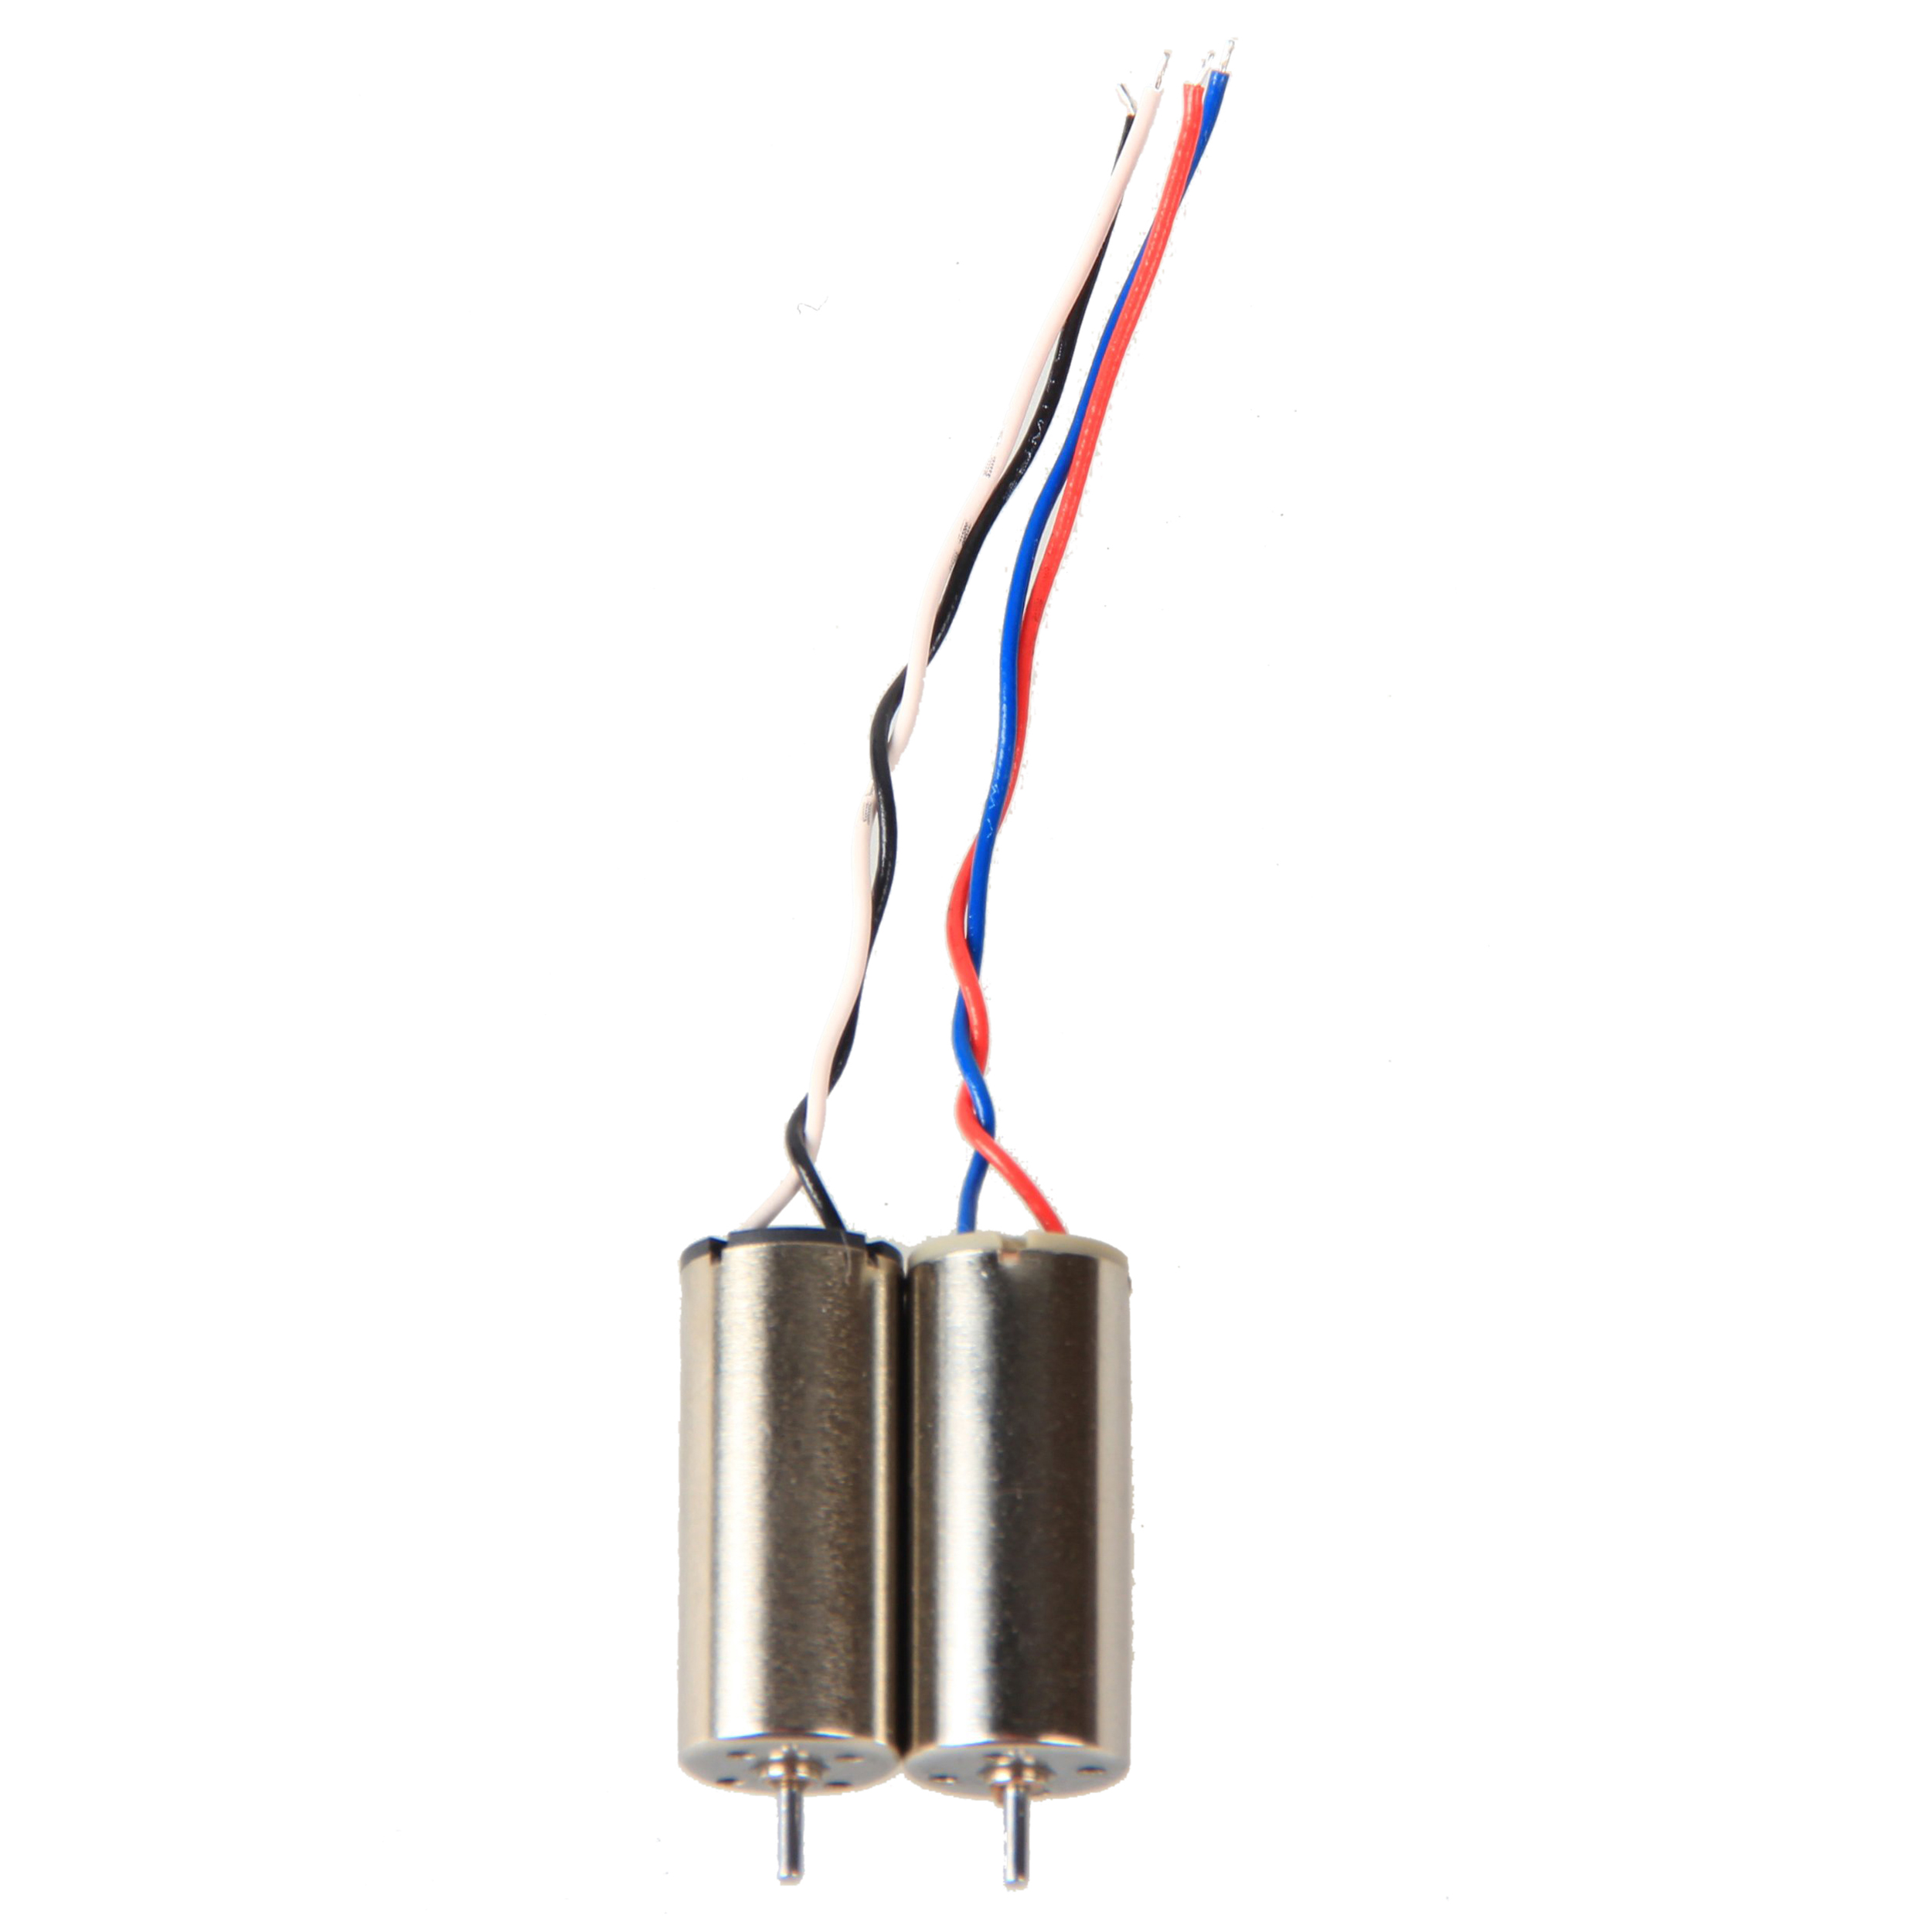 DHDL-8x20mm replacement motor for Hubsan X4 H107C H107D Quadcopter RC Quadrocopter Drone 2 pieces